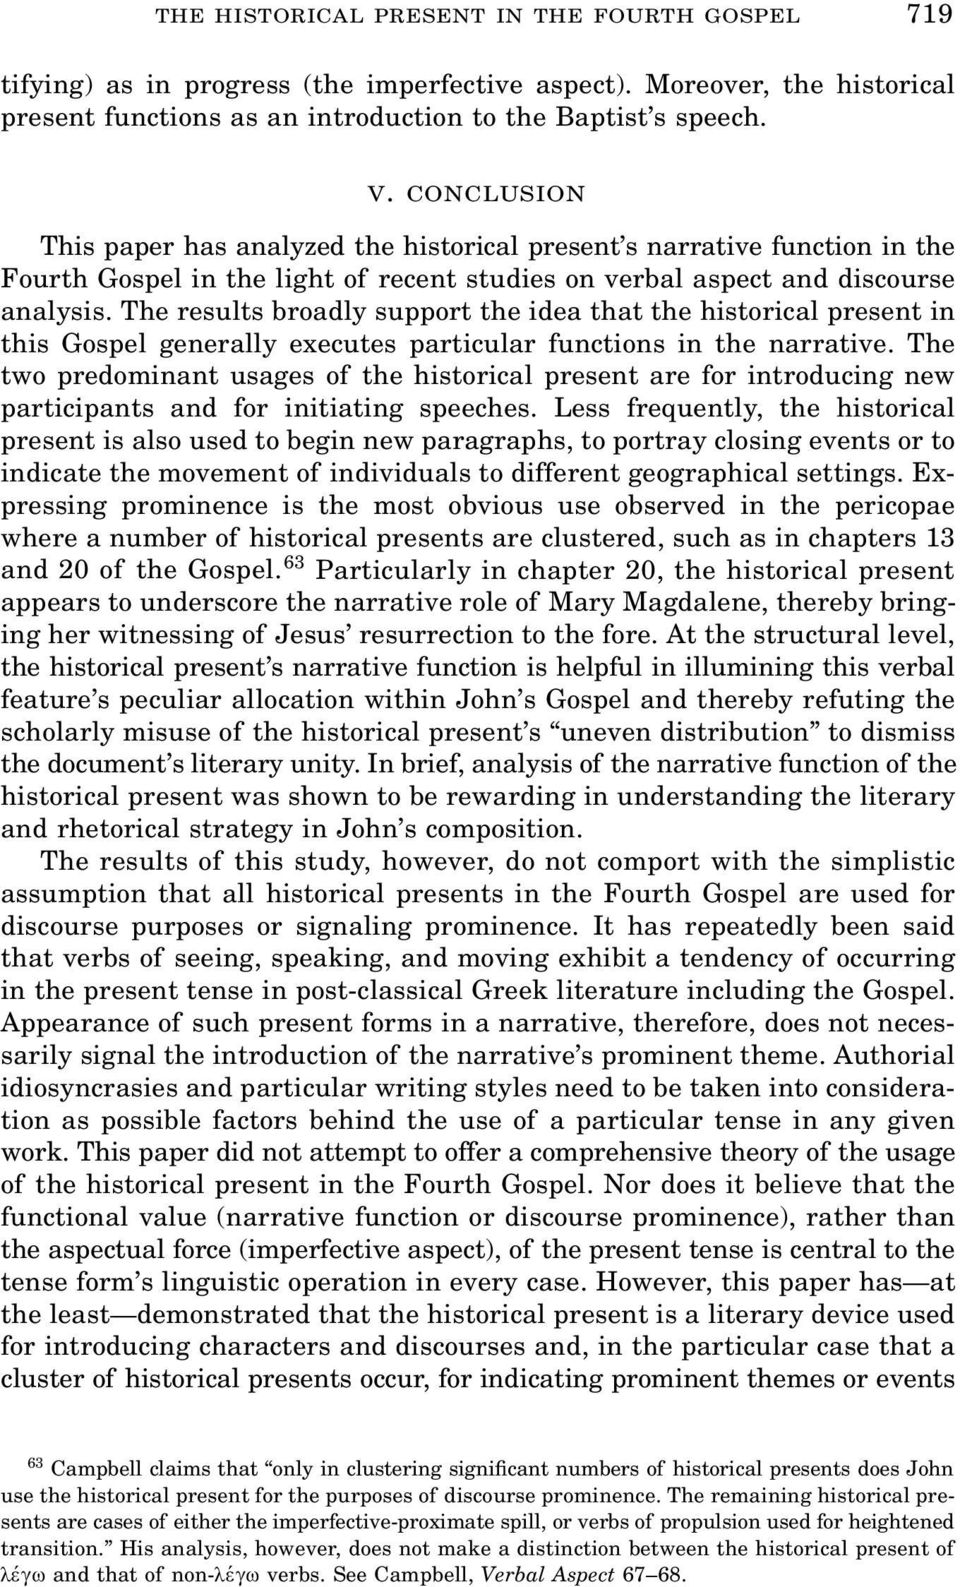 The results broadly support the idea that the historical present in this Gospel generally executes particular functions in the narrative.